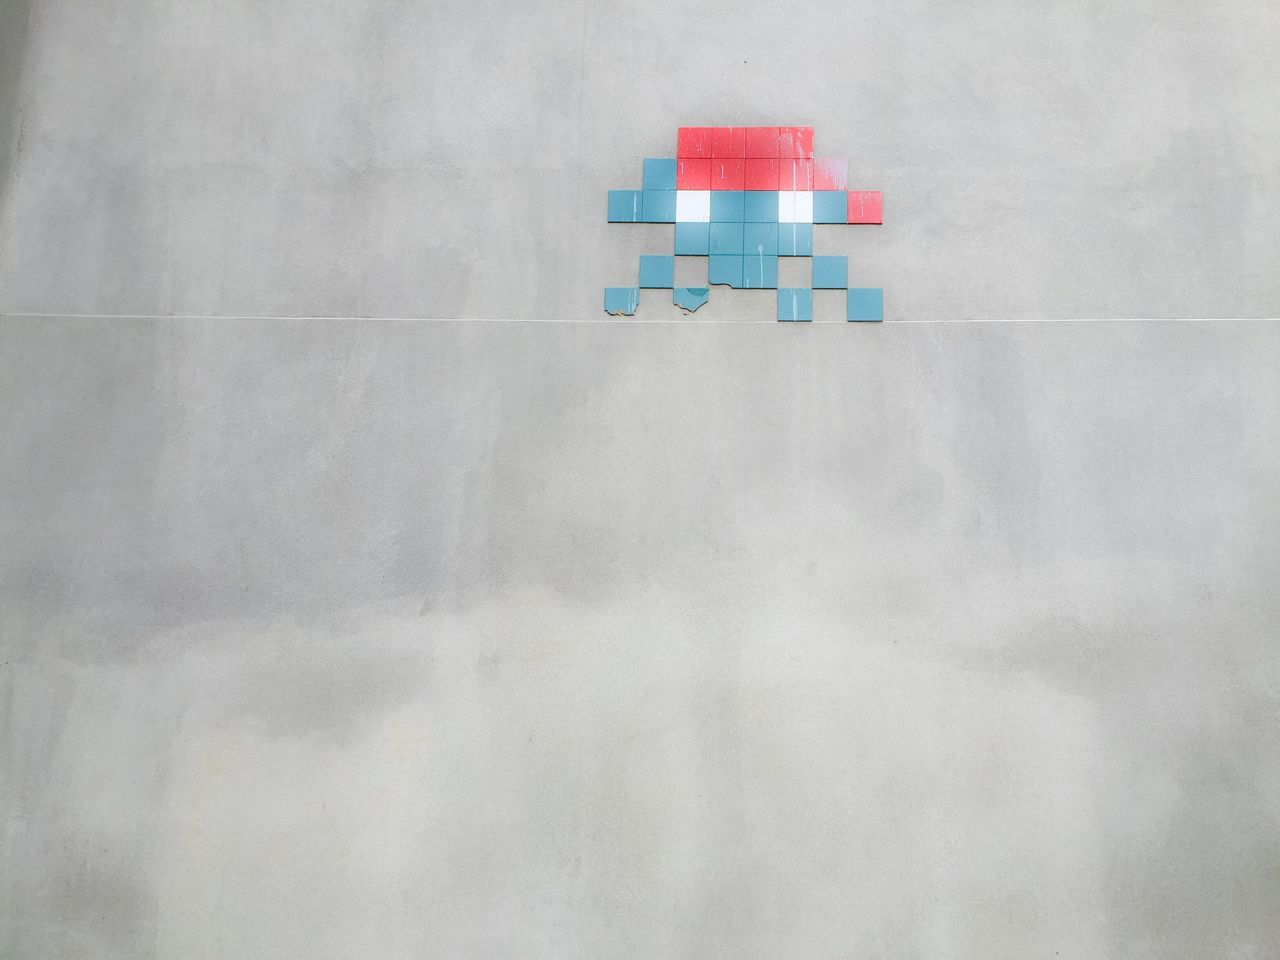 Just one example of the inventive street art you find tucked away in London's backstreets. Space Invaders Retro Computer Games Tiles Street Art Huge Canvas Grey Wall Backstreets & Alleyways Arcade Games Don't Get Shot Here Belongs To Me